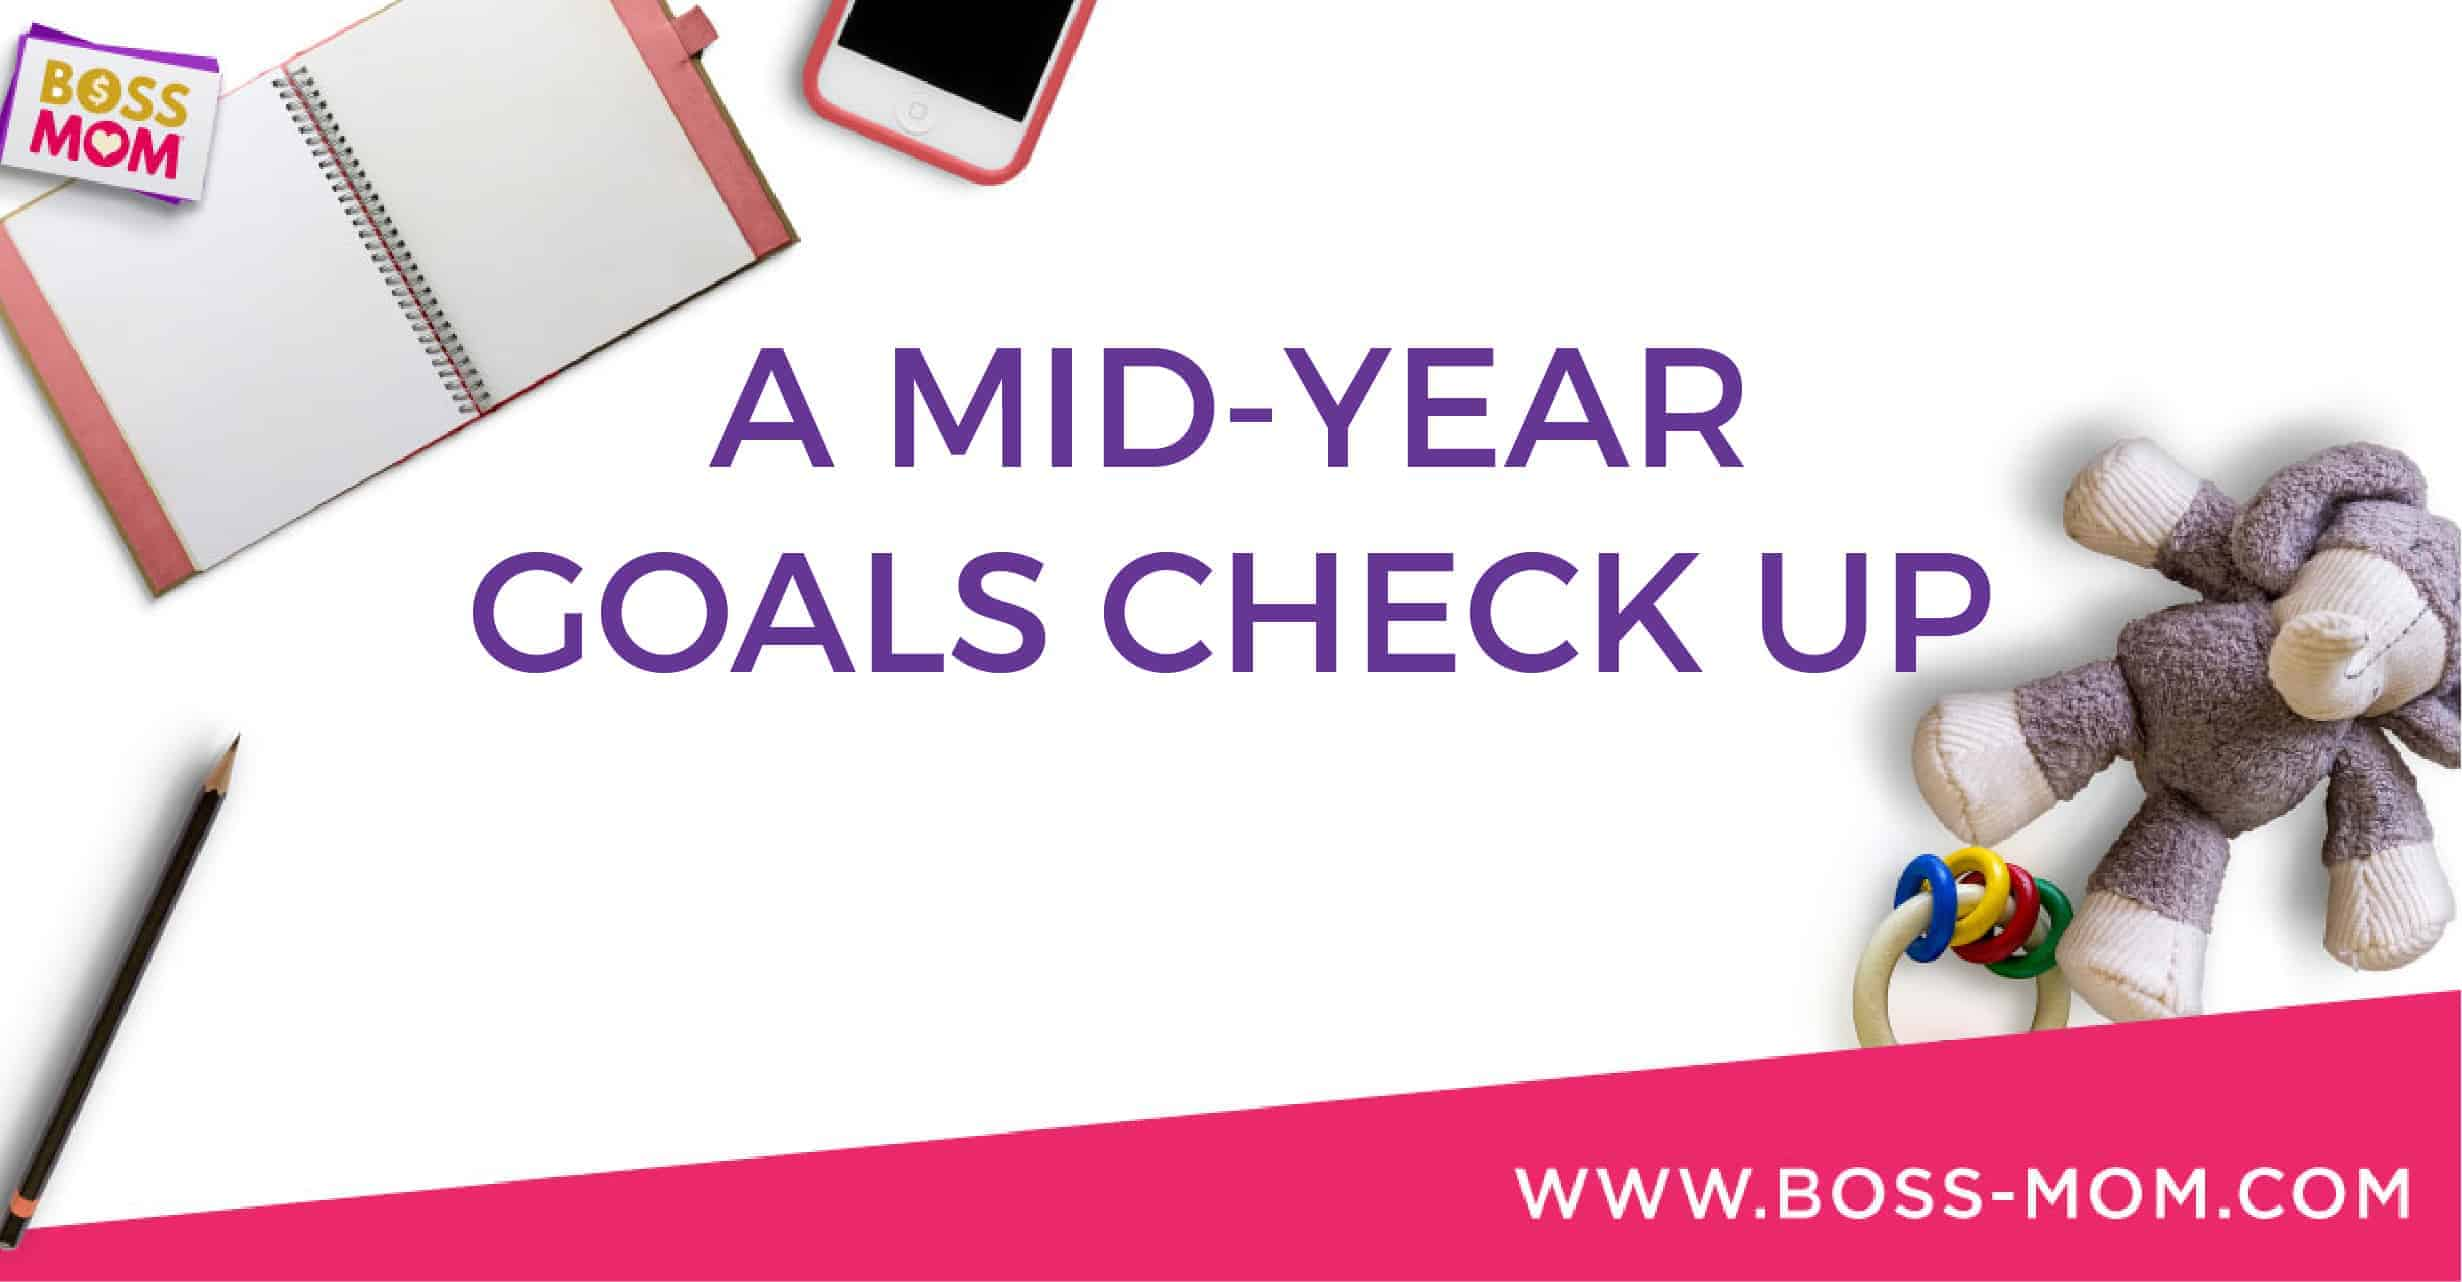 Episode 212: A Mid Year Goals Checkup with Dana & NJ